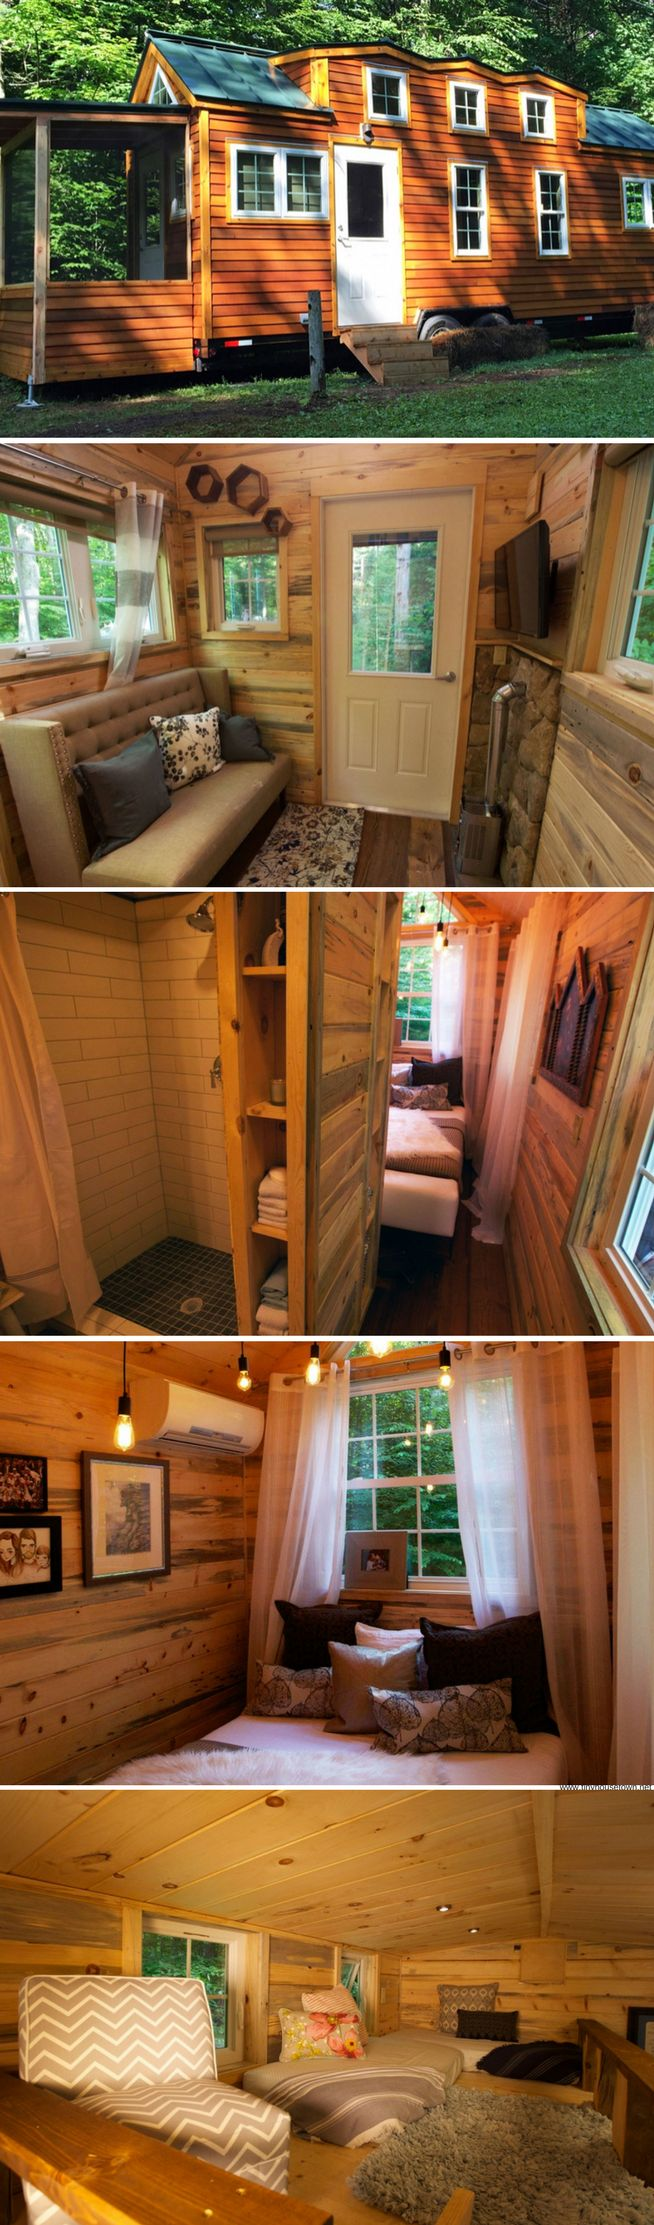 The Basketball House (276 sq ft)